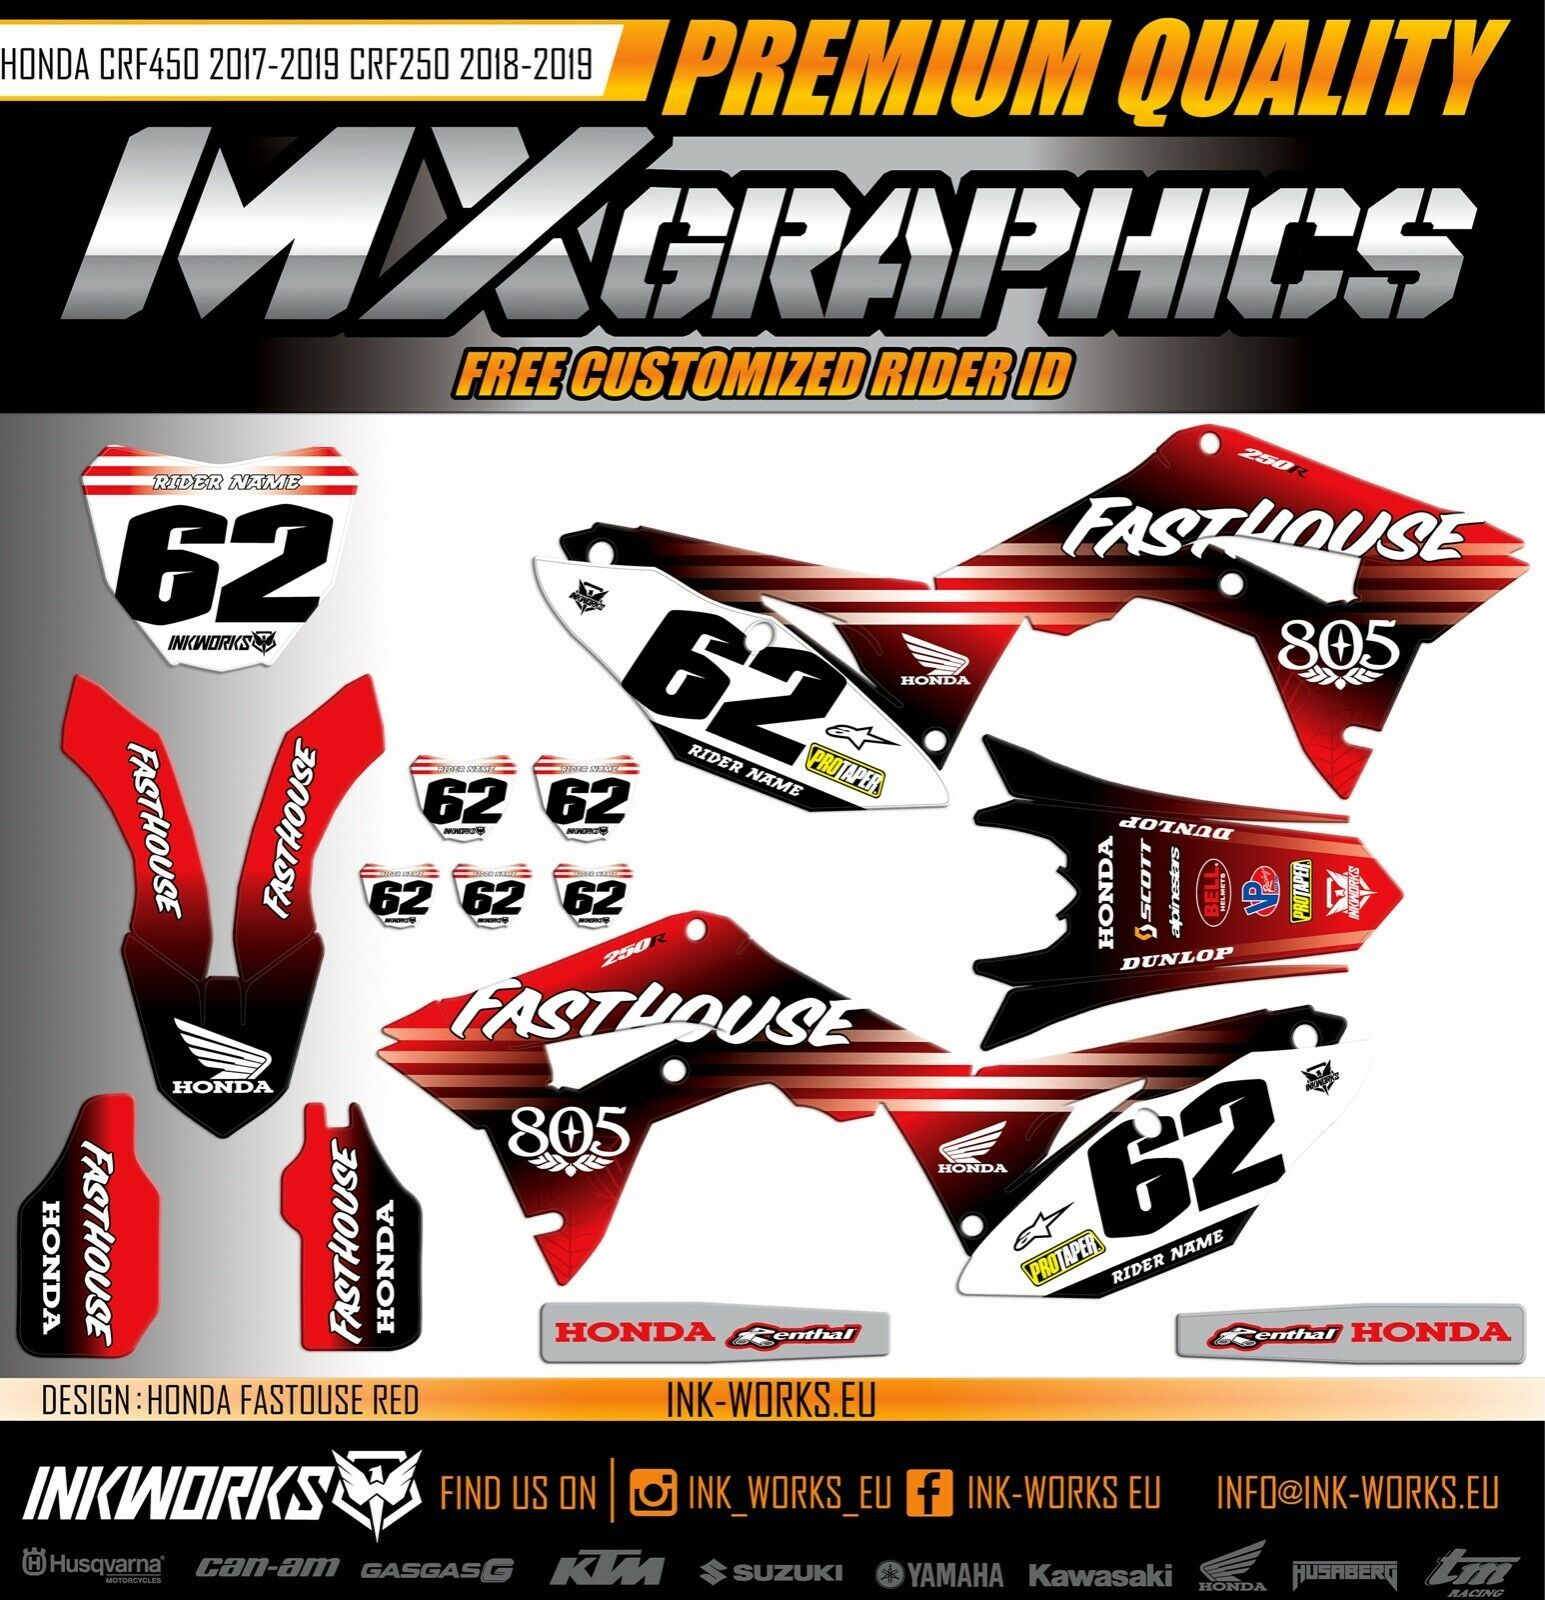 Pin by FMTL on Honda CRF250 accessories | Decals, Stickers